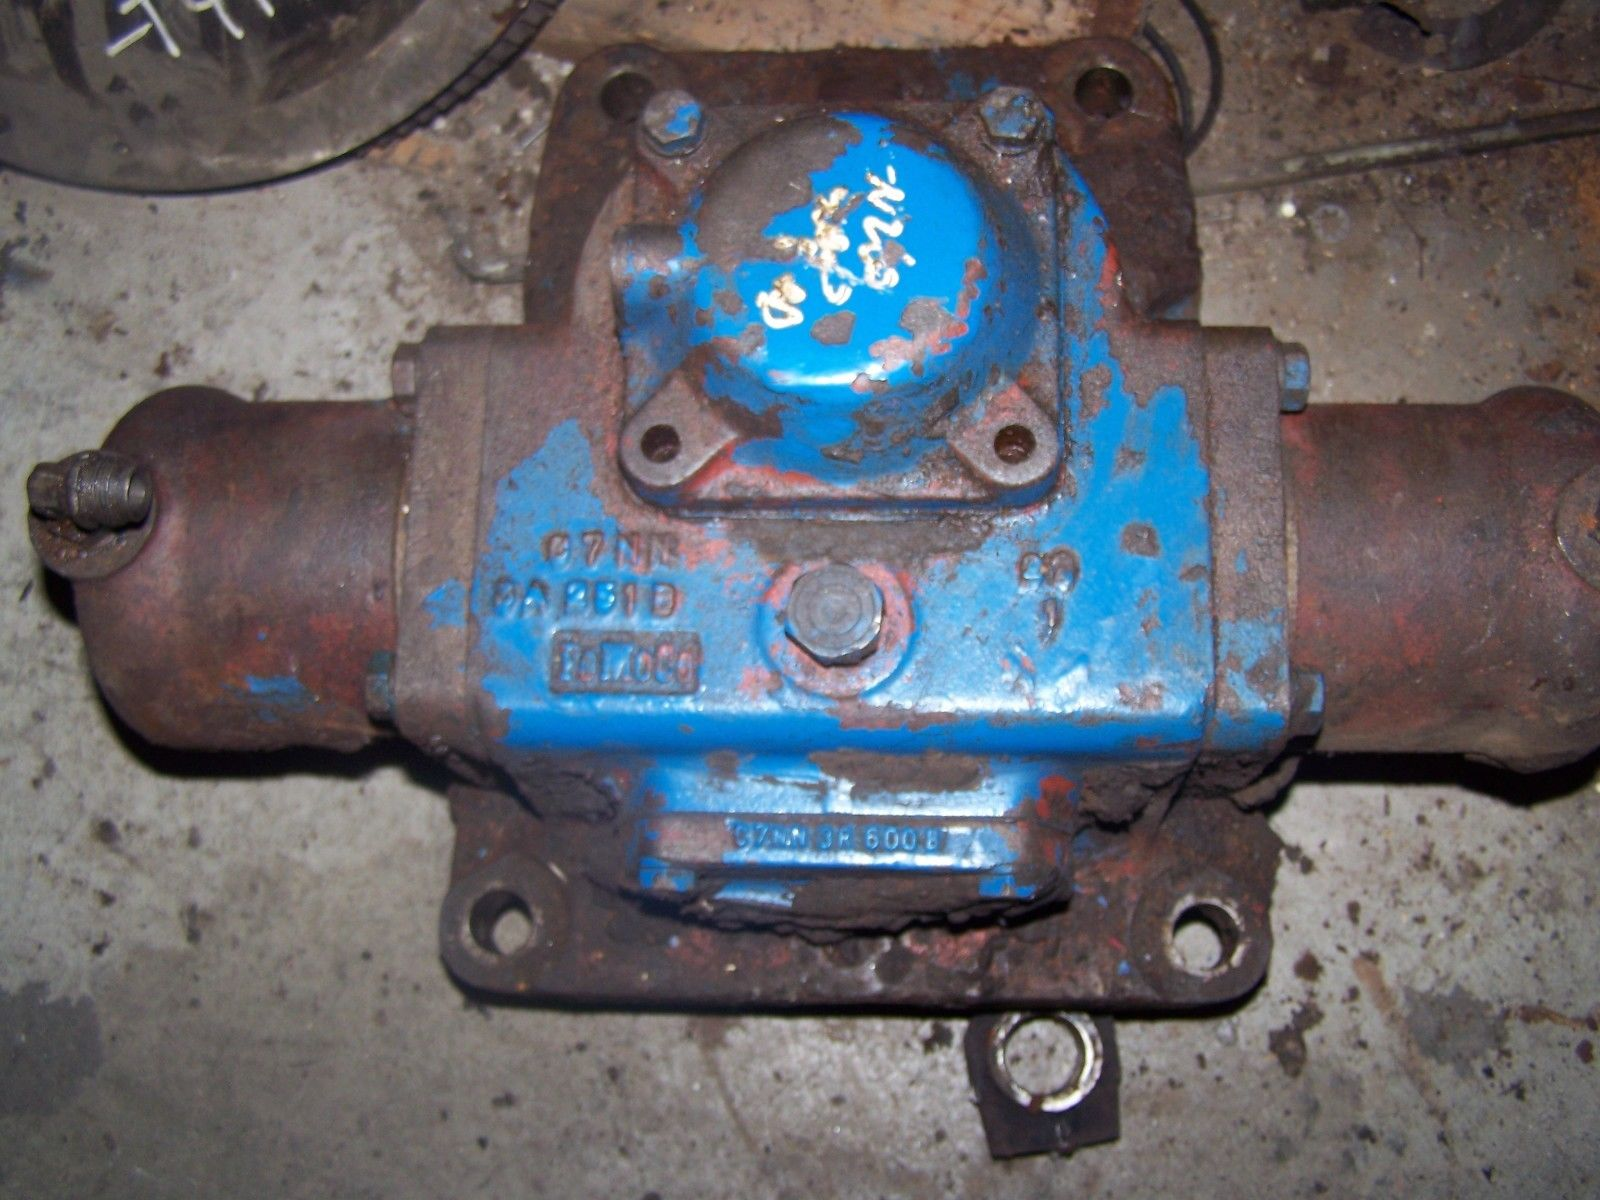 Ford 8000 Front Power Steering Motor C7NN3A244B